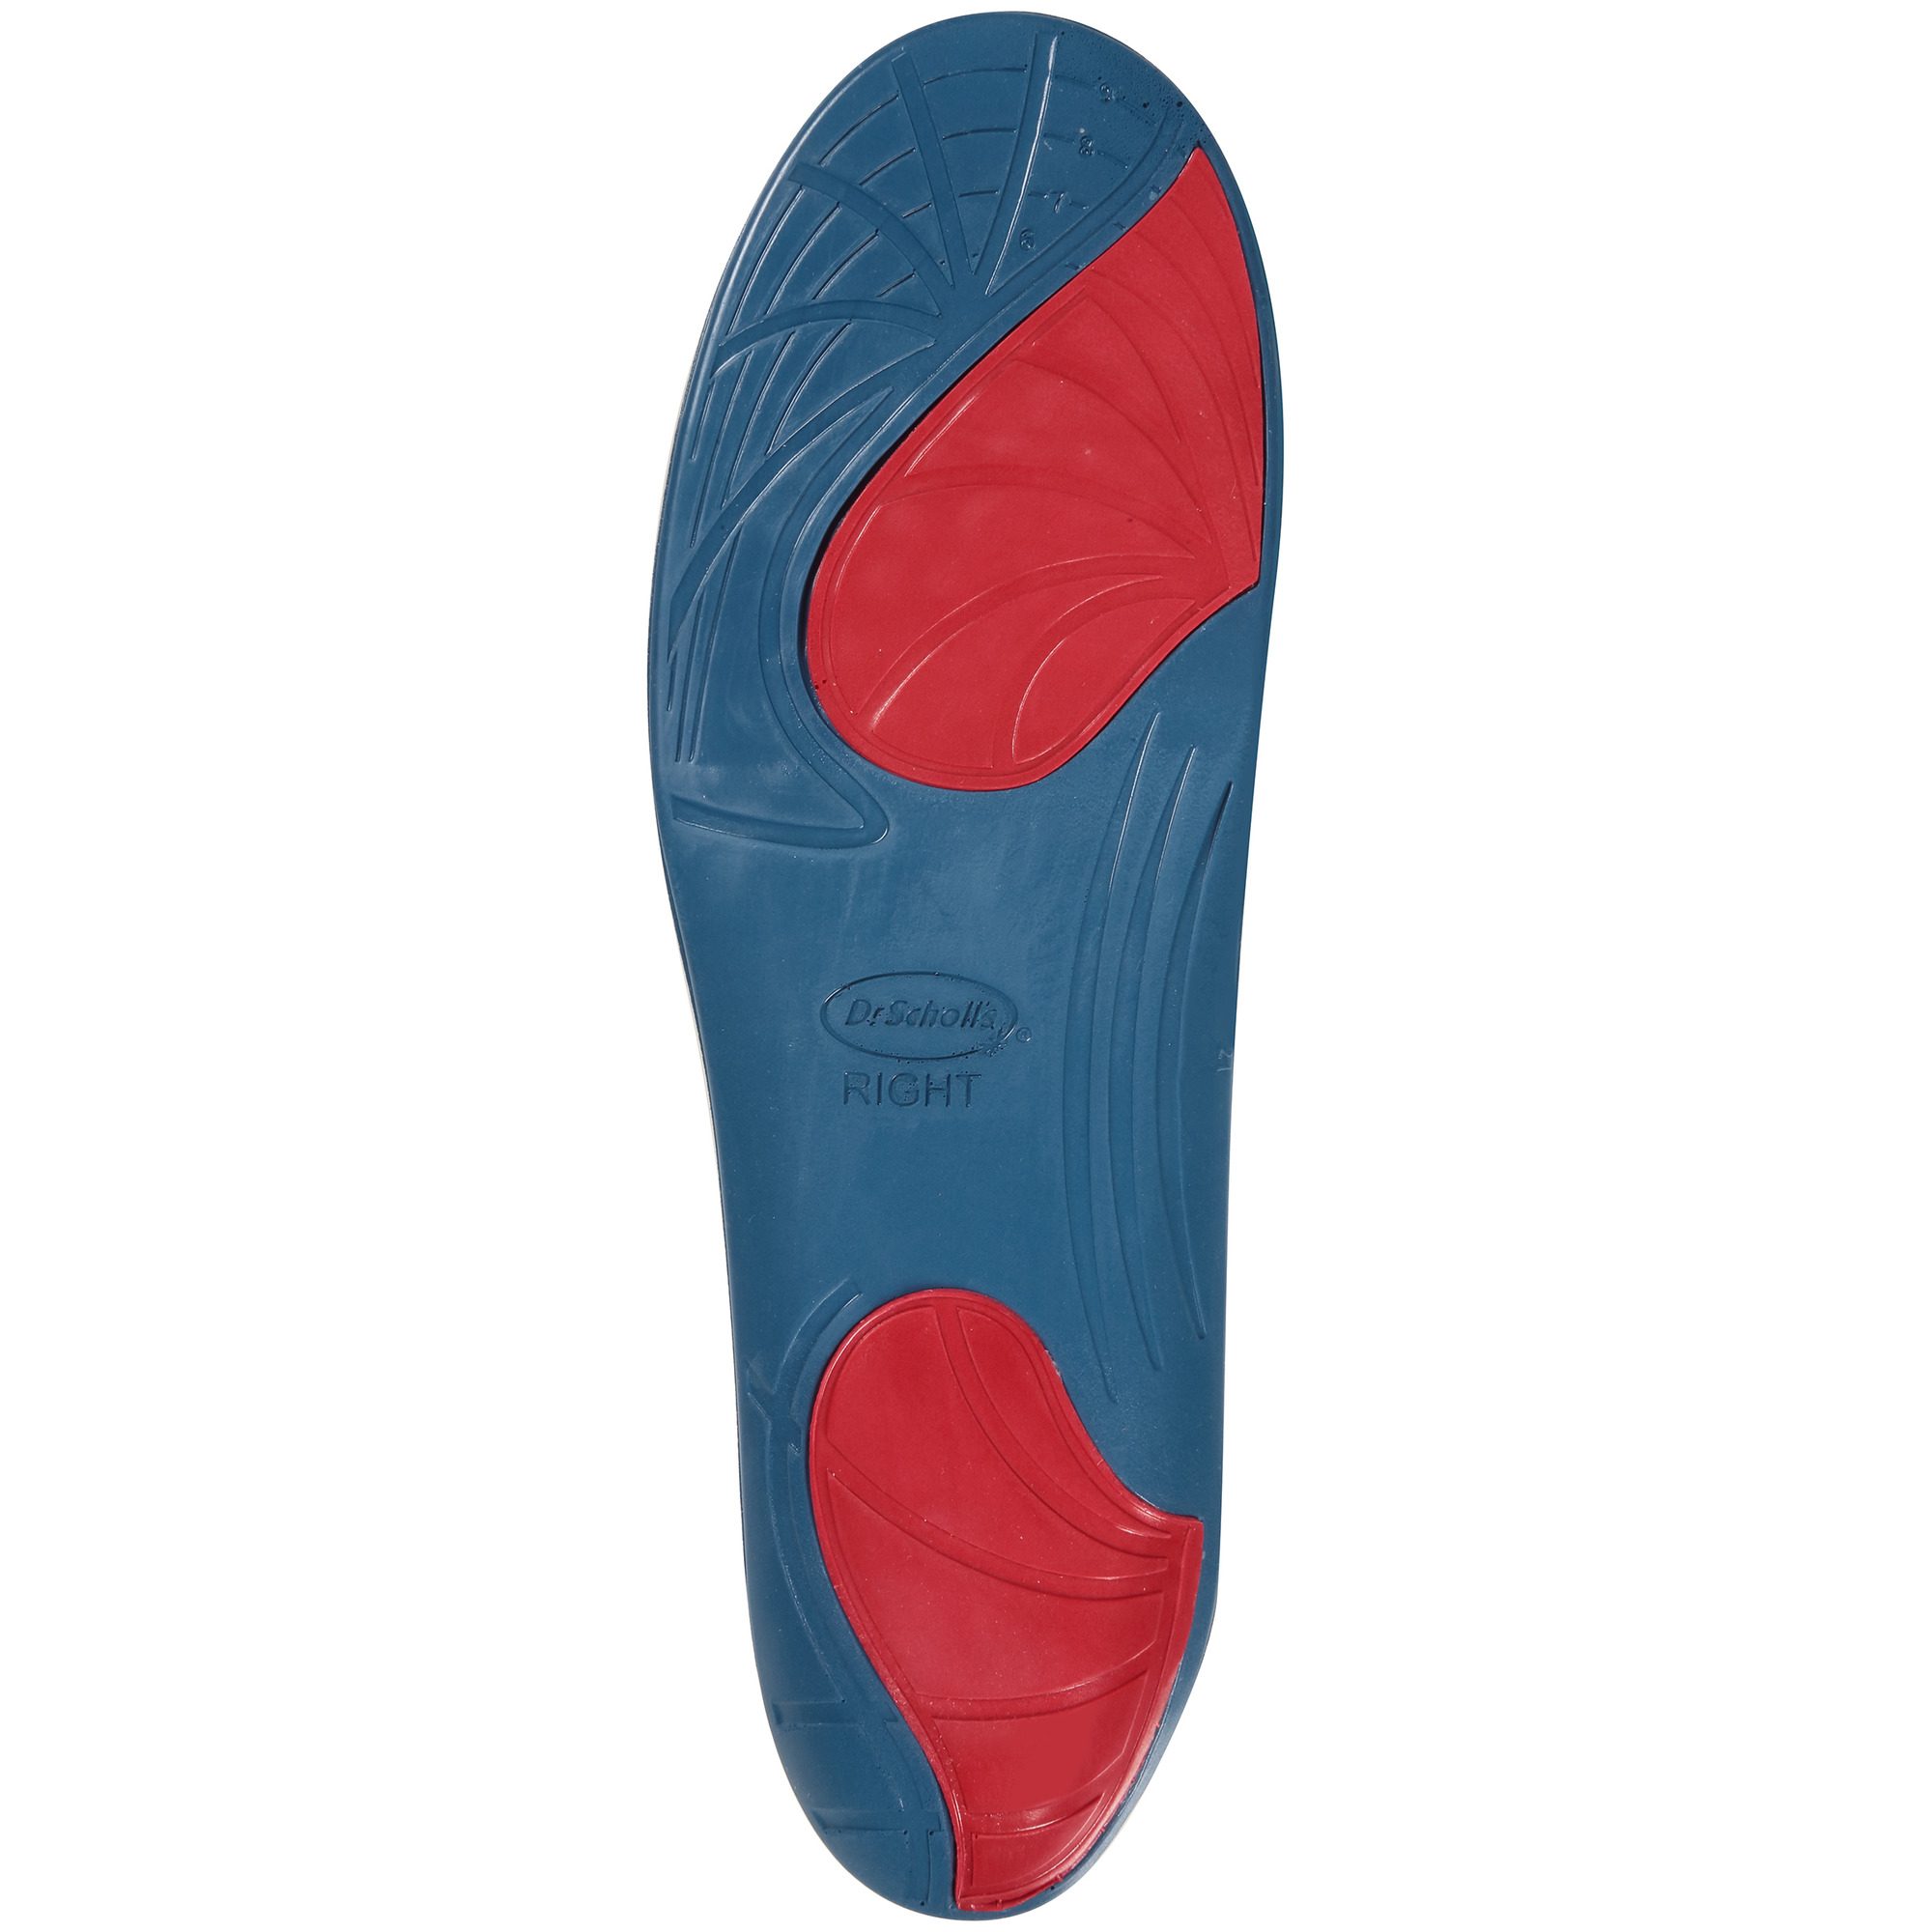 Dr. Scholl's Pain Relief Orthotics For Sore Soles For